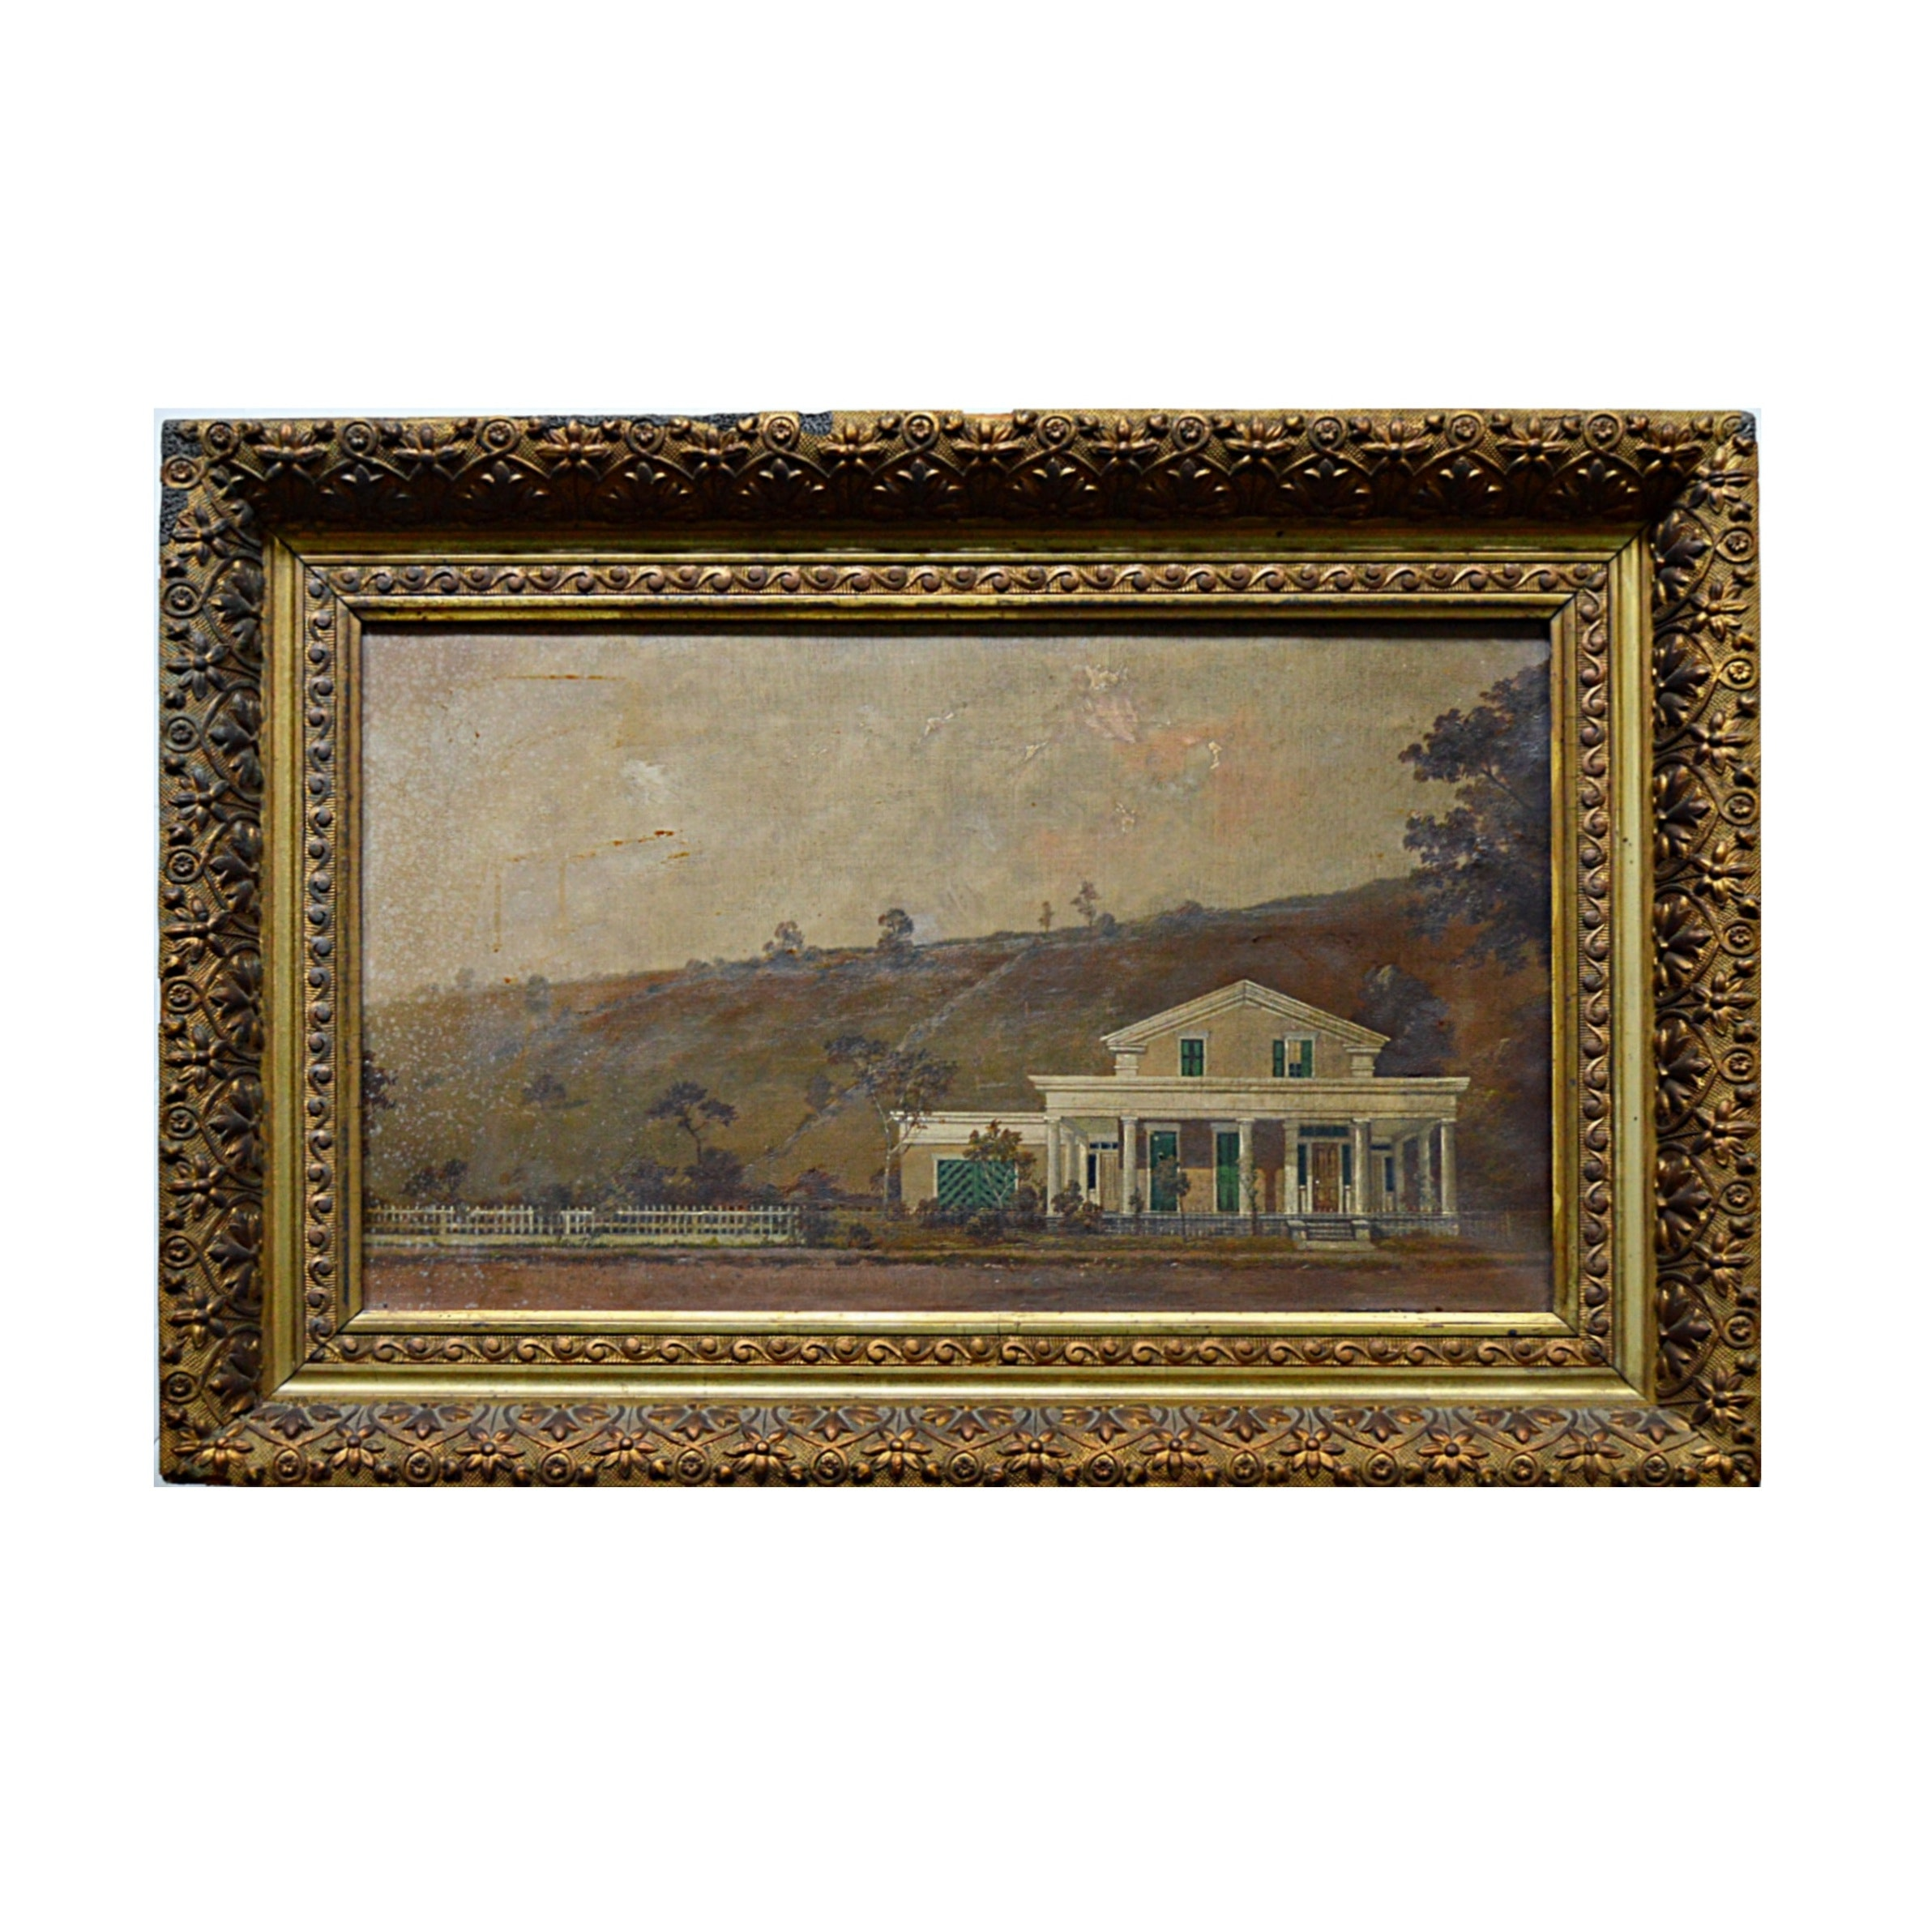 Antique Oil on Canvas of a 19th Century Greek Revival Texan Country Home